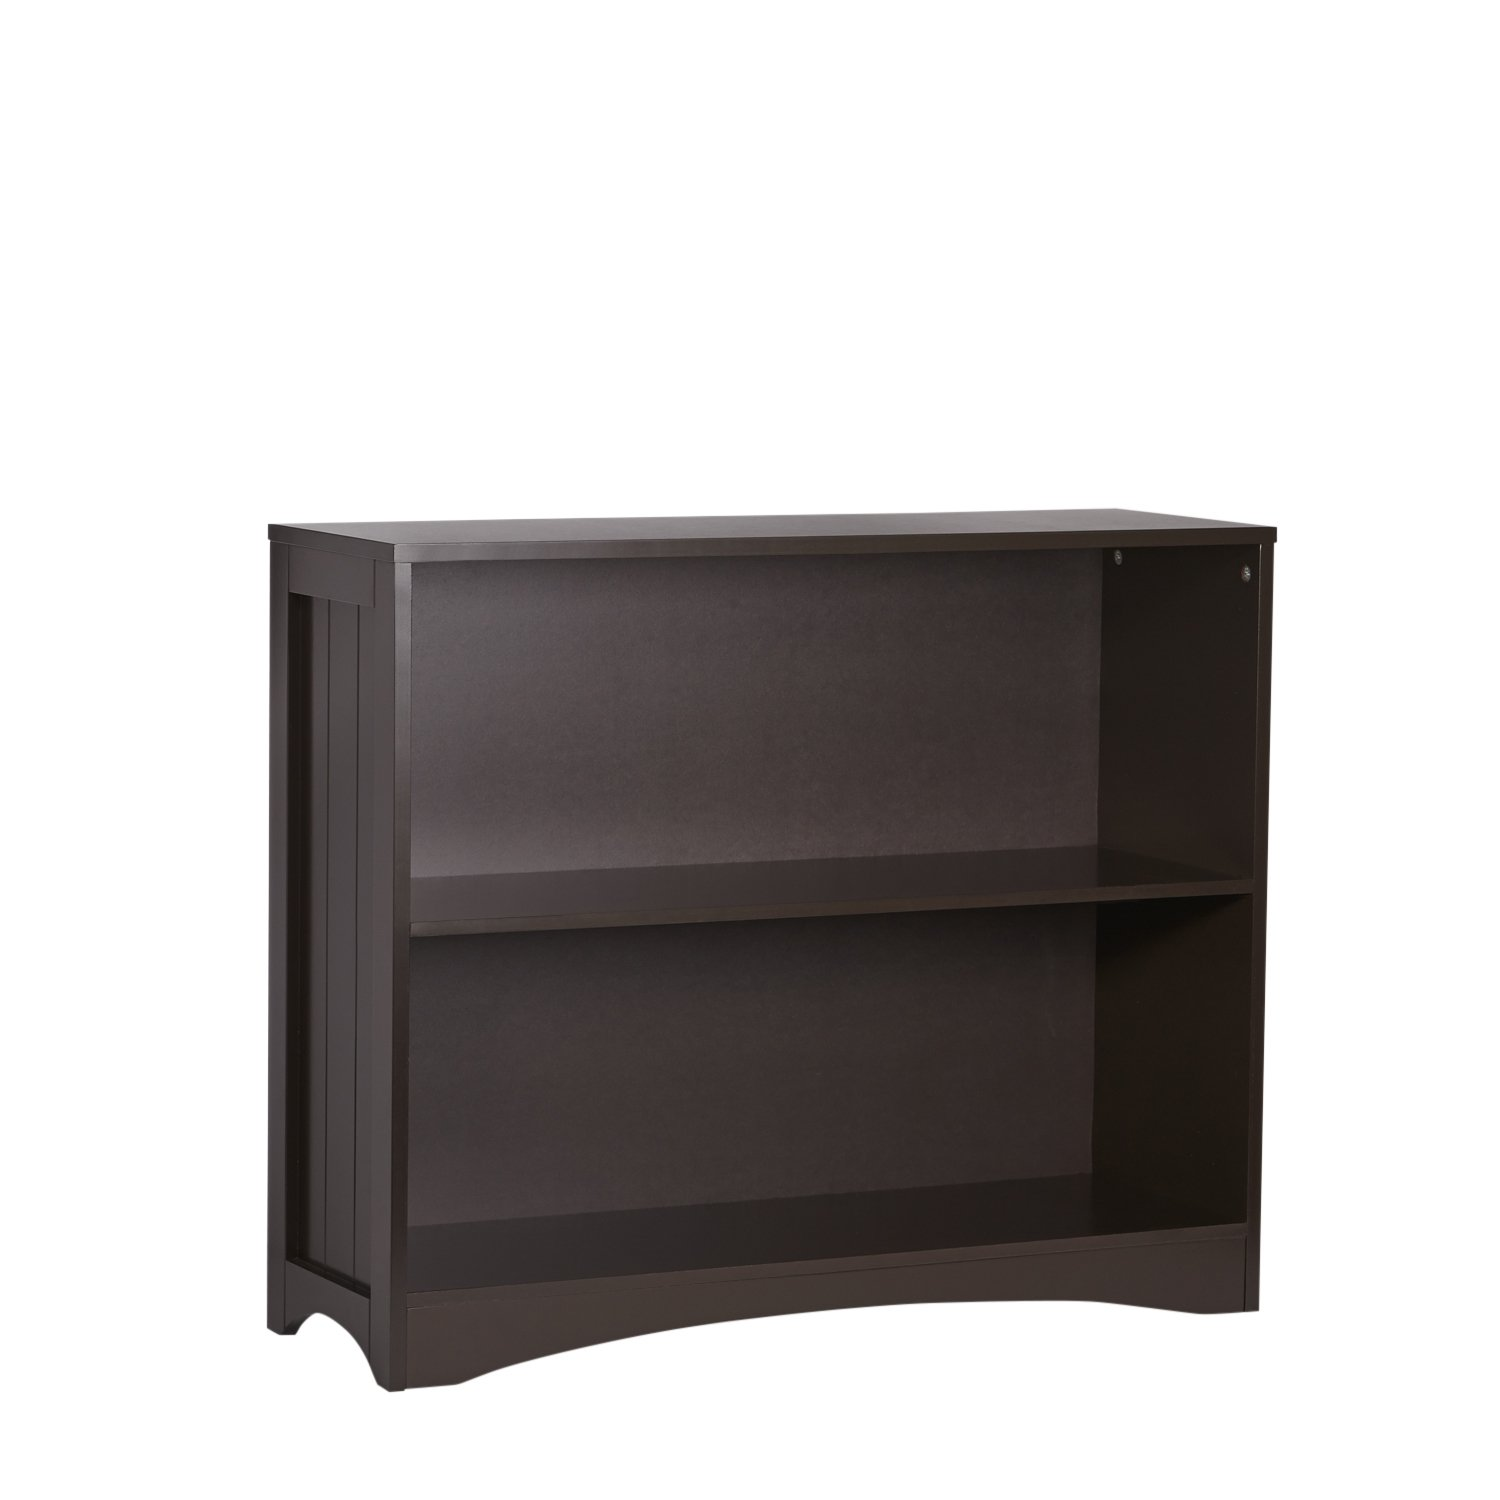 riverridge kids horizontal bookcase espresso kitchen